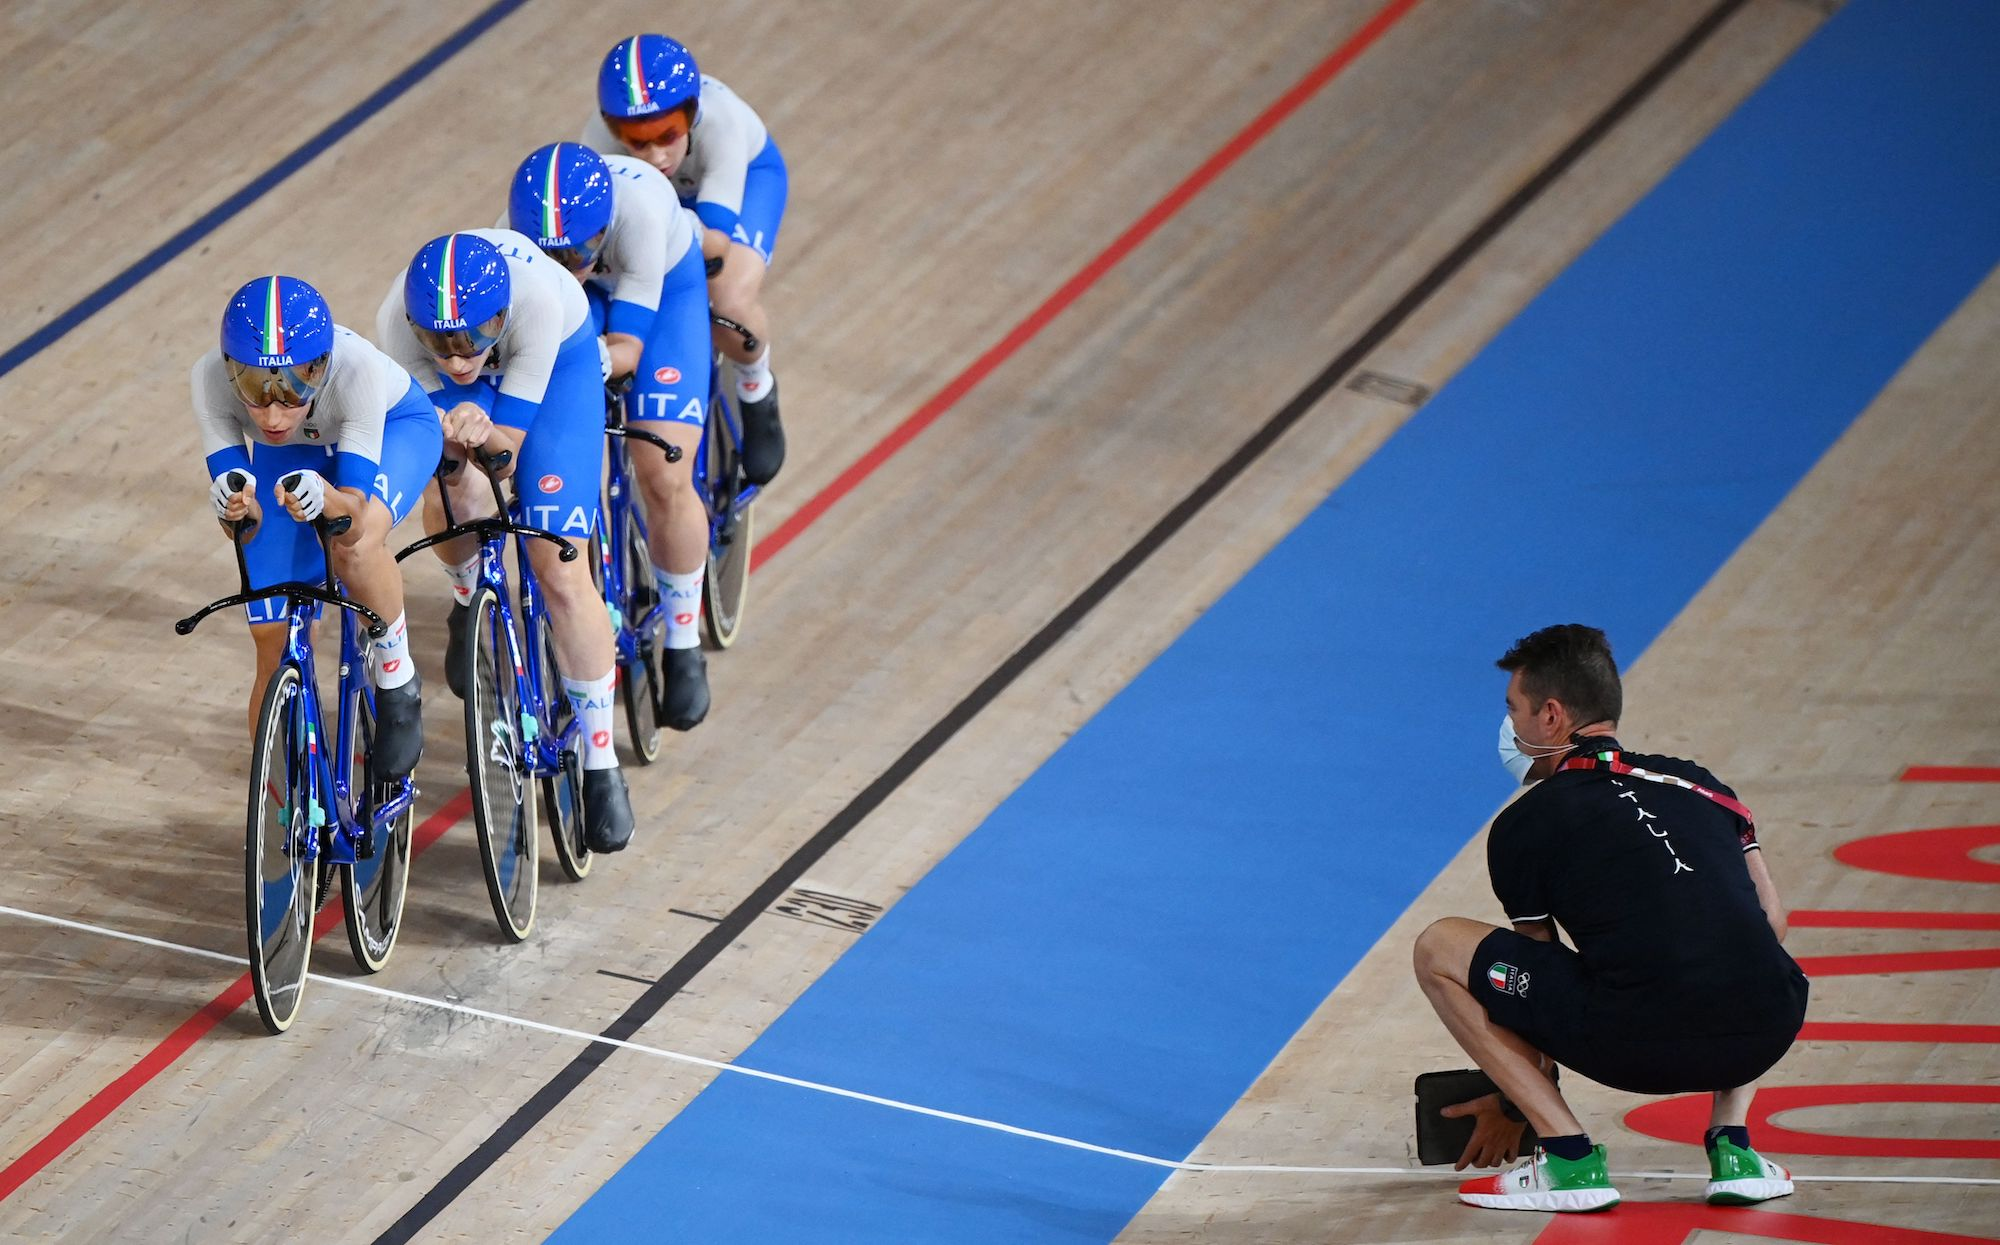 Team Italy in the women's team pursuit qualifying